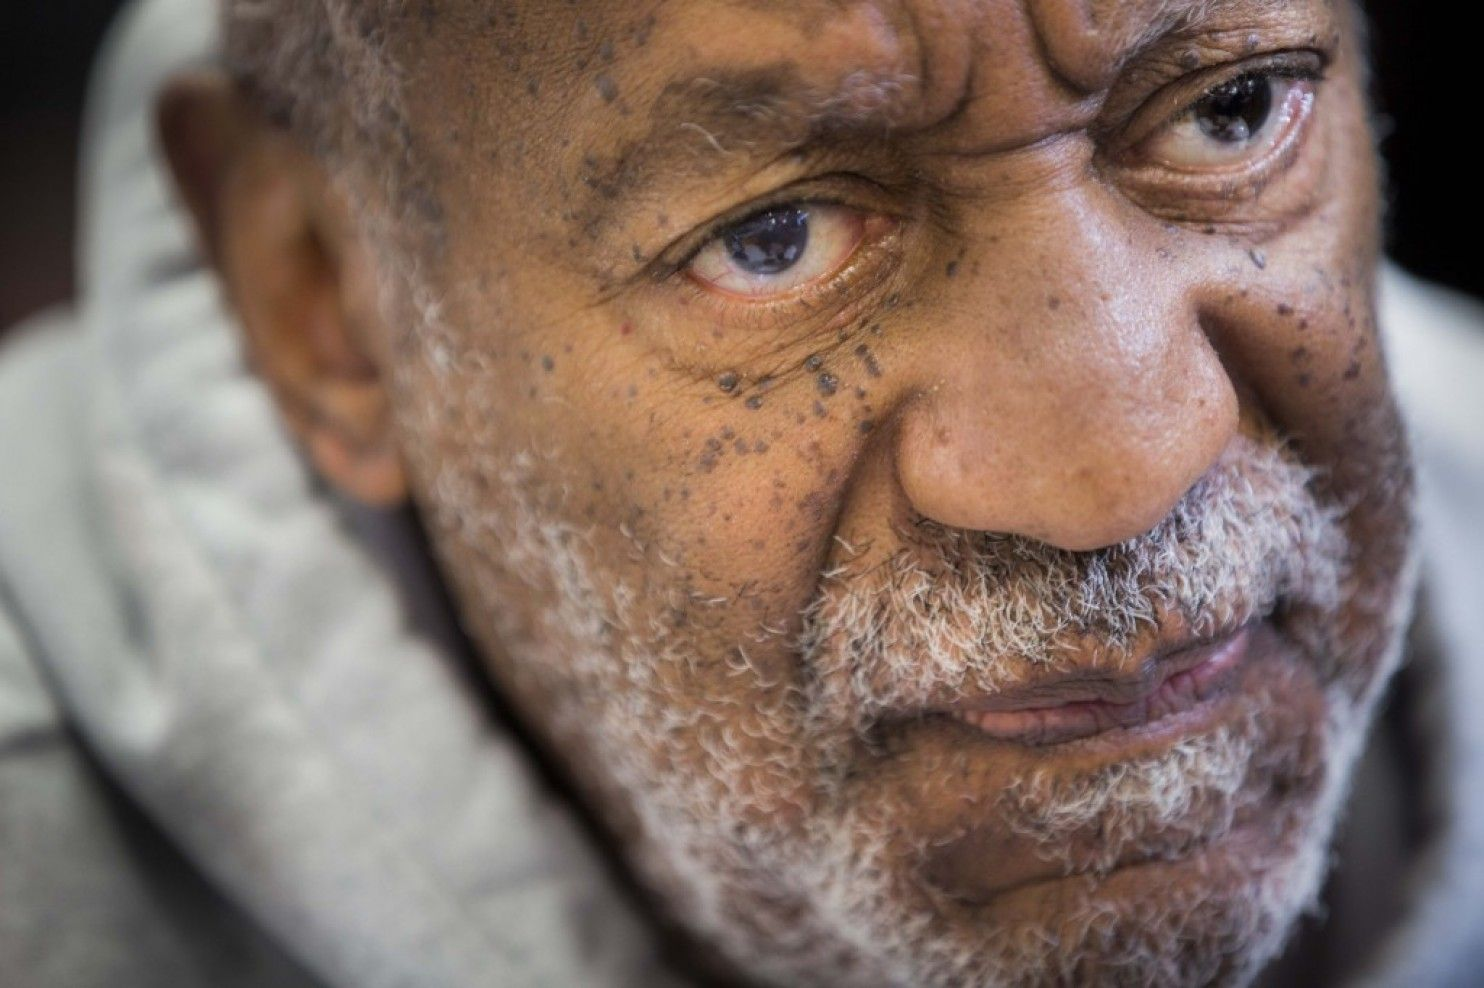 5. Bill Cosby Is A Creep